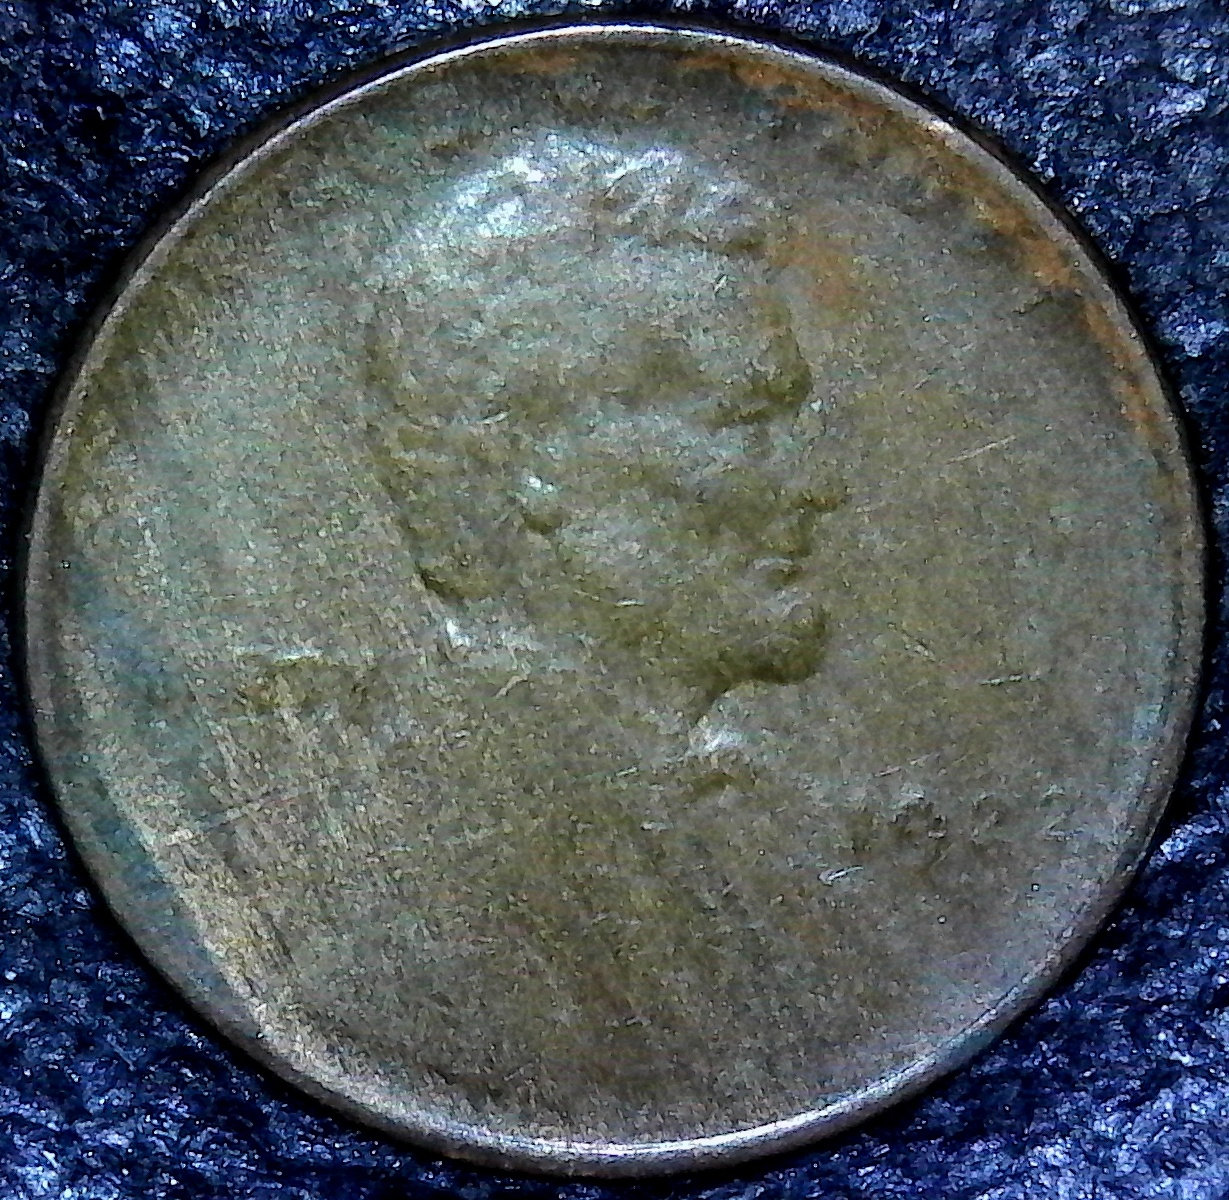 Here s the link to lincoln cent resource on the coattails http lincolncentresource com 1922ddievarieties html